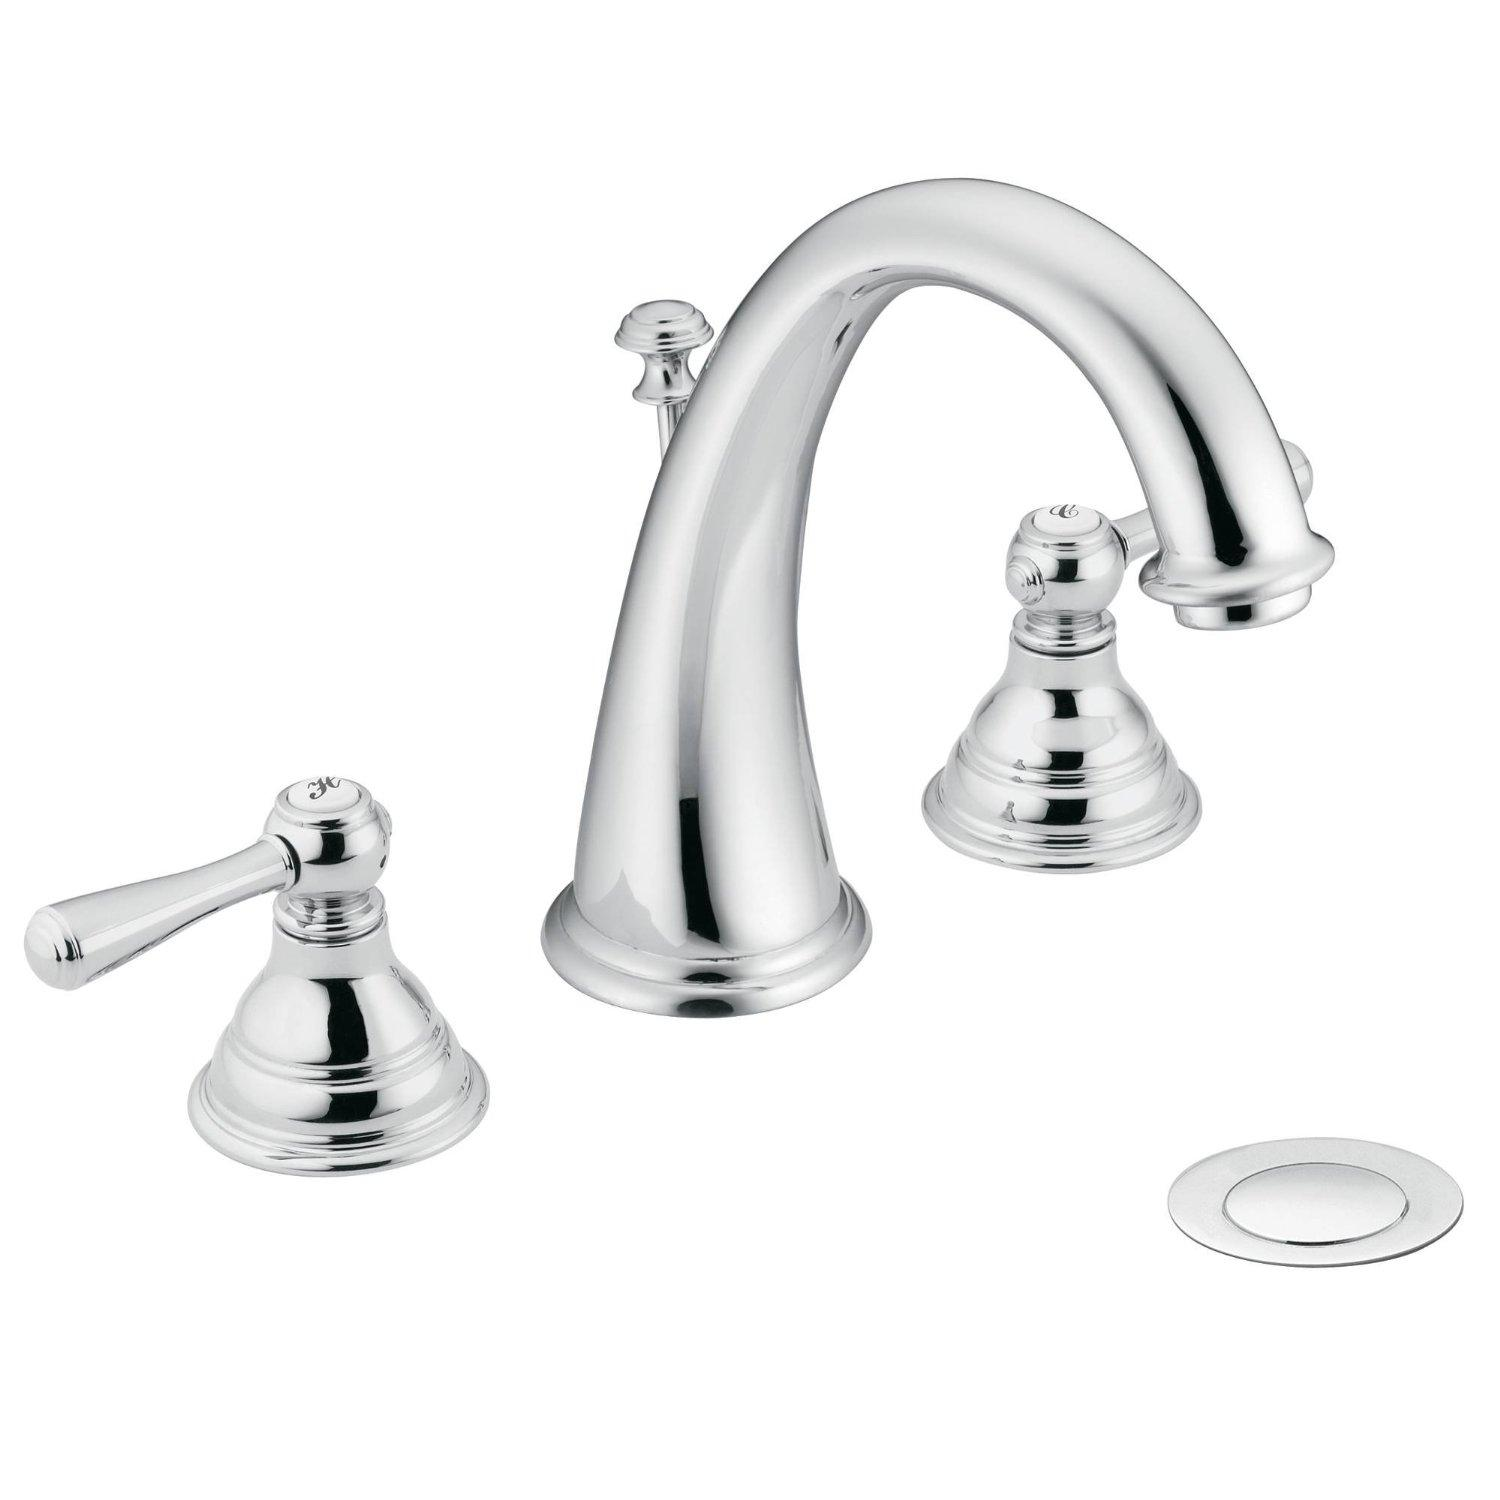 Moen Kingsley Two Handle High Arc Bathroom Faucet